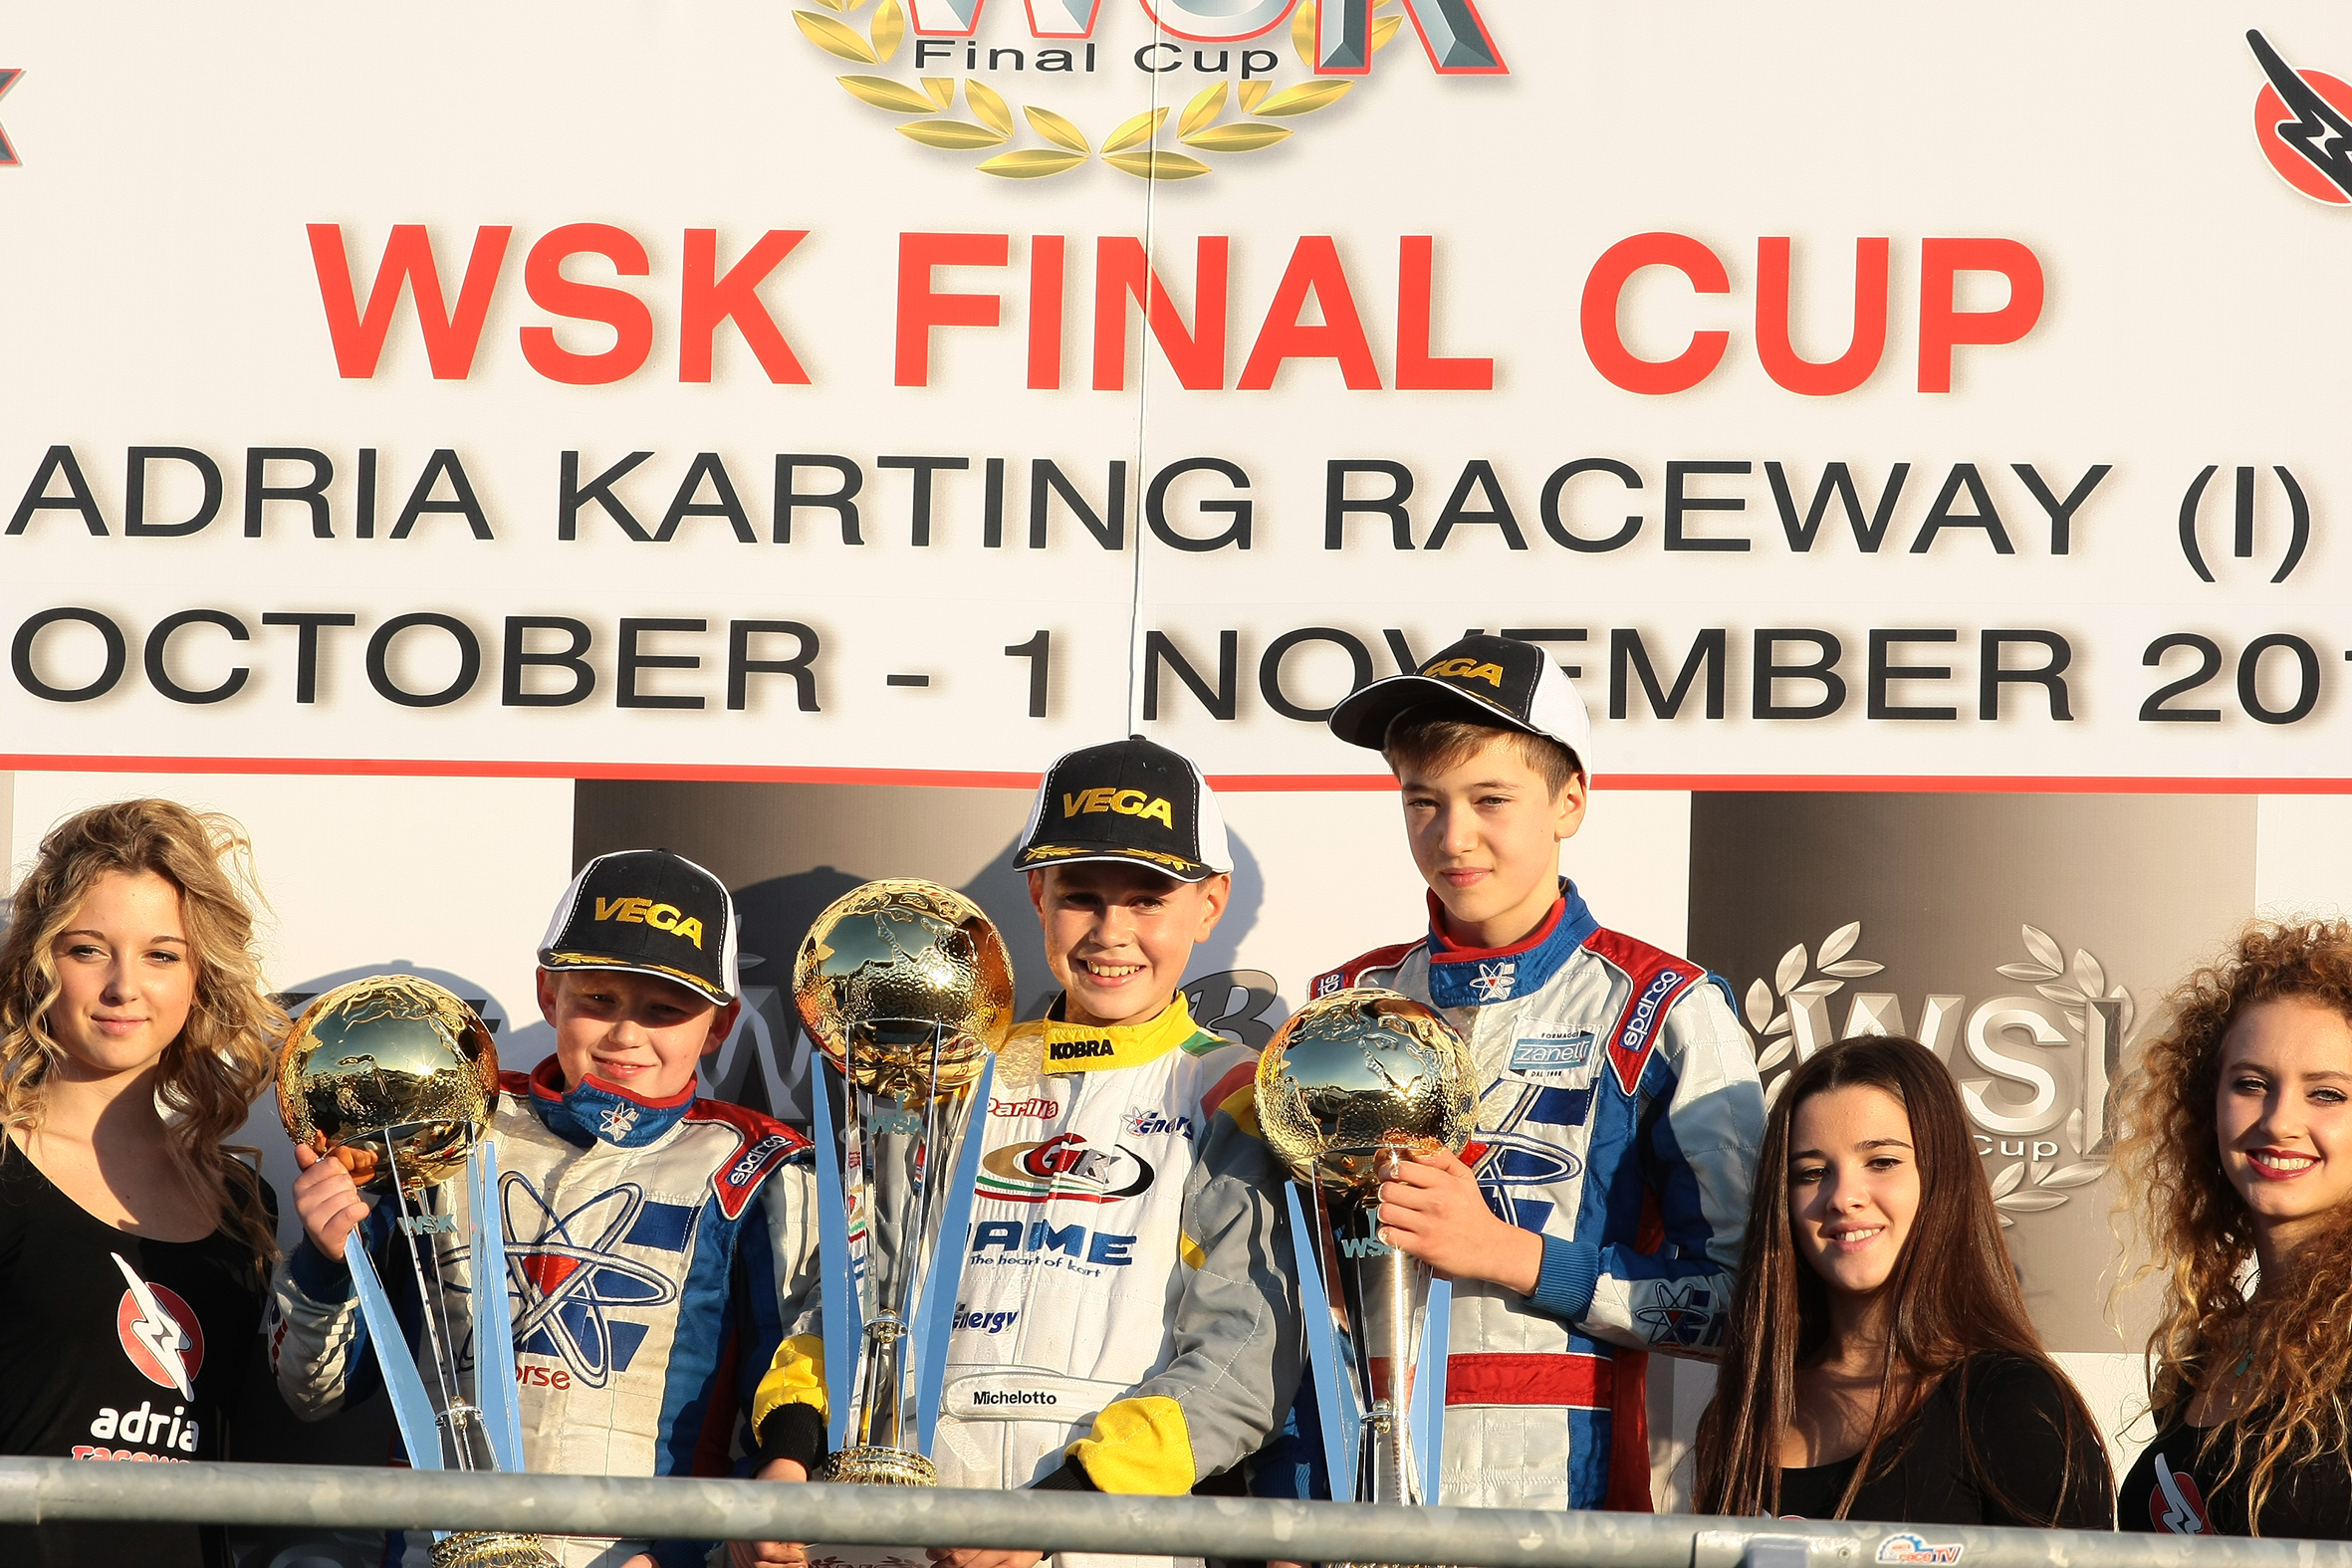 WSK FINAL CUP 2015